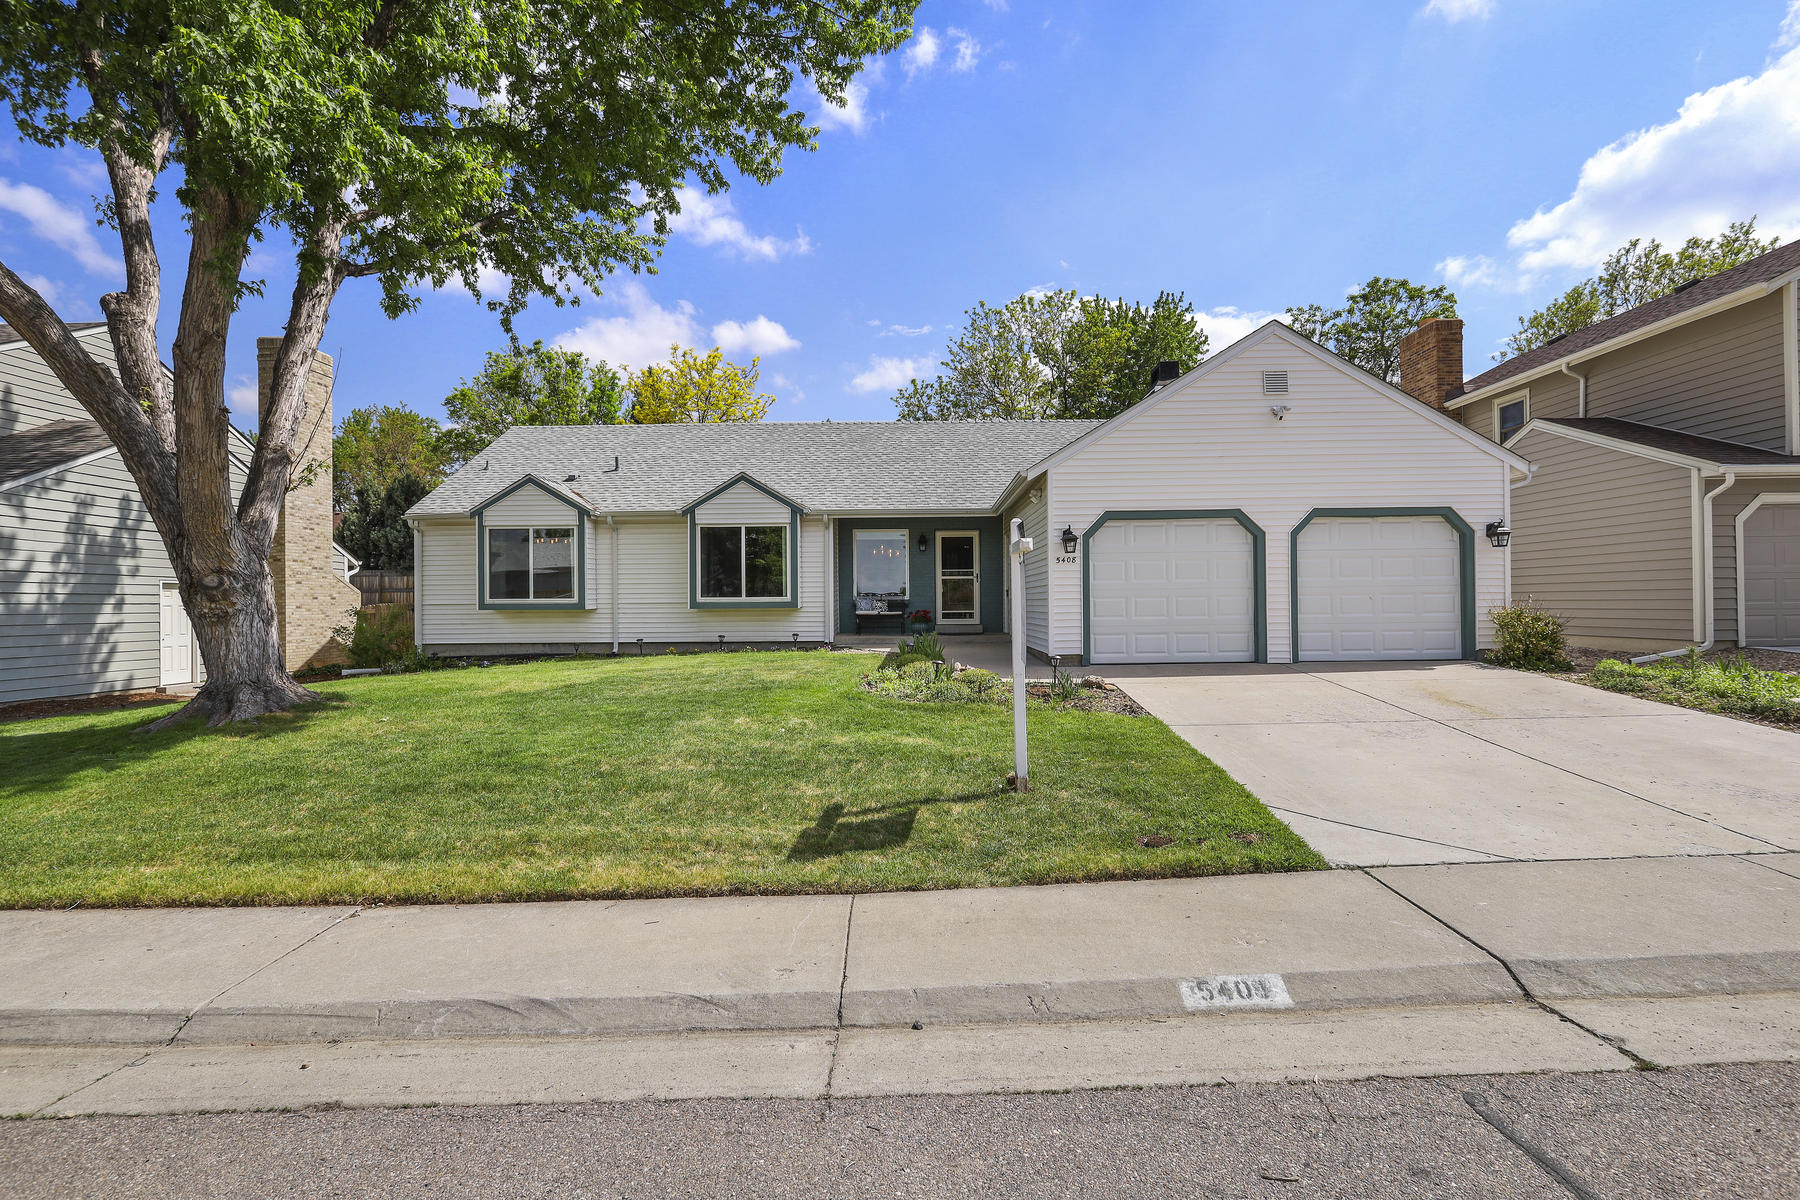 Single Family Homes for Sale at Beautiful remodeled Ranch style home on a tree lined street. 5408 E Briarwood Circle Centennial, Colorado 80122 United States